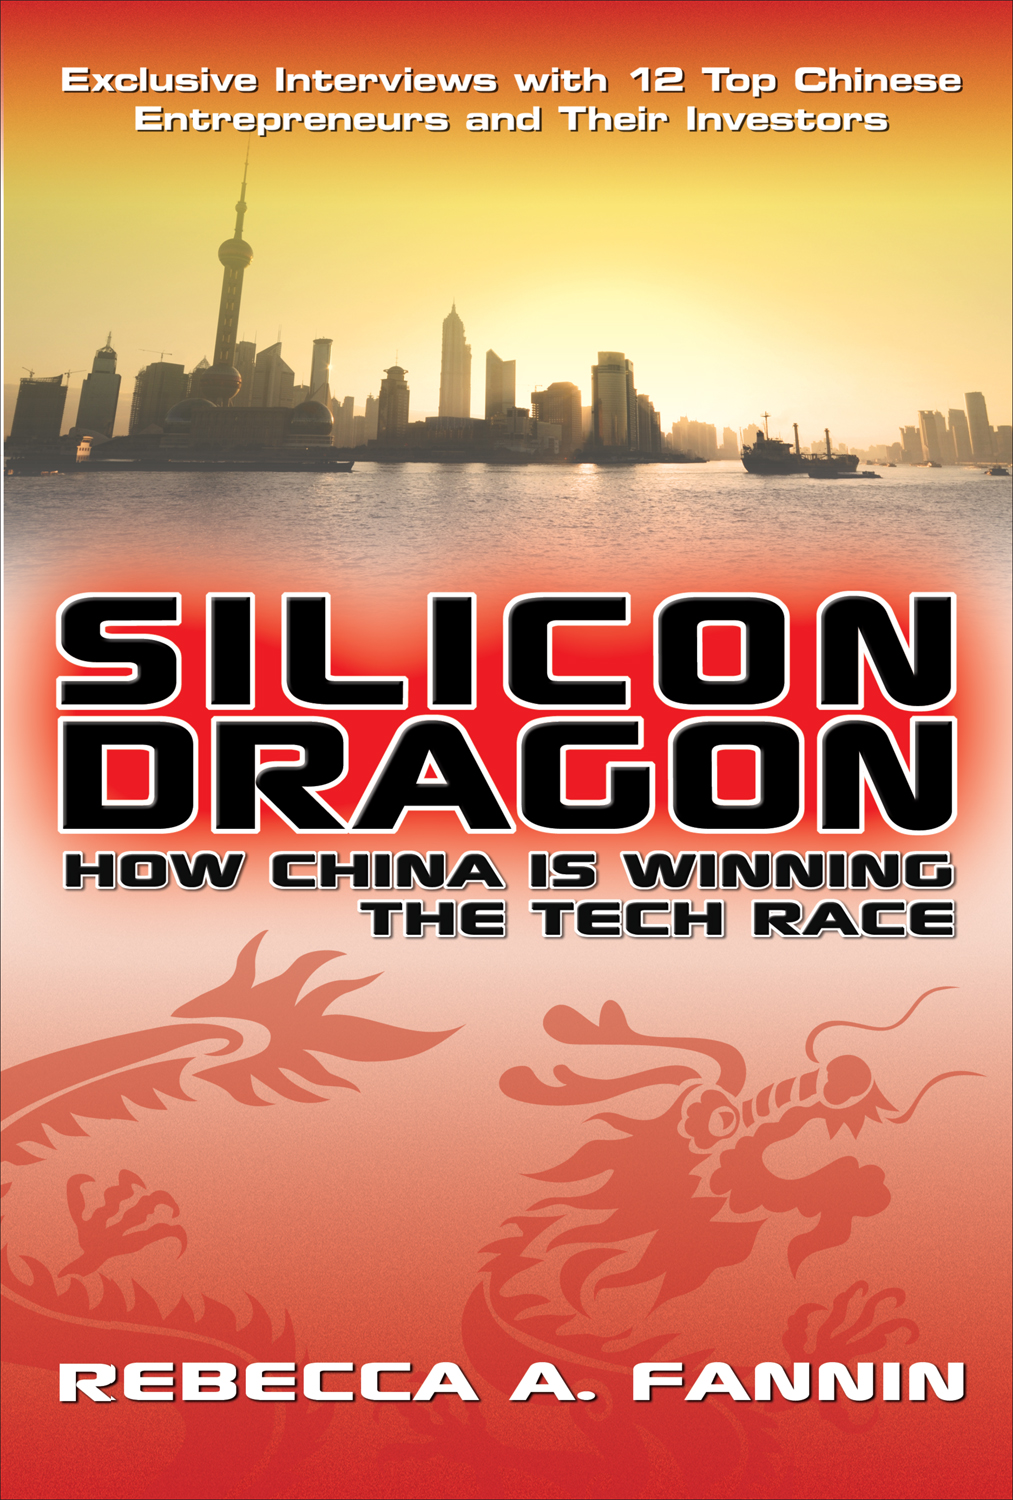 Download Ebook Silicon Dragon: How China Is Winning the Tech Race by Rebecca Fannin Pdf